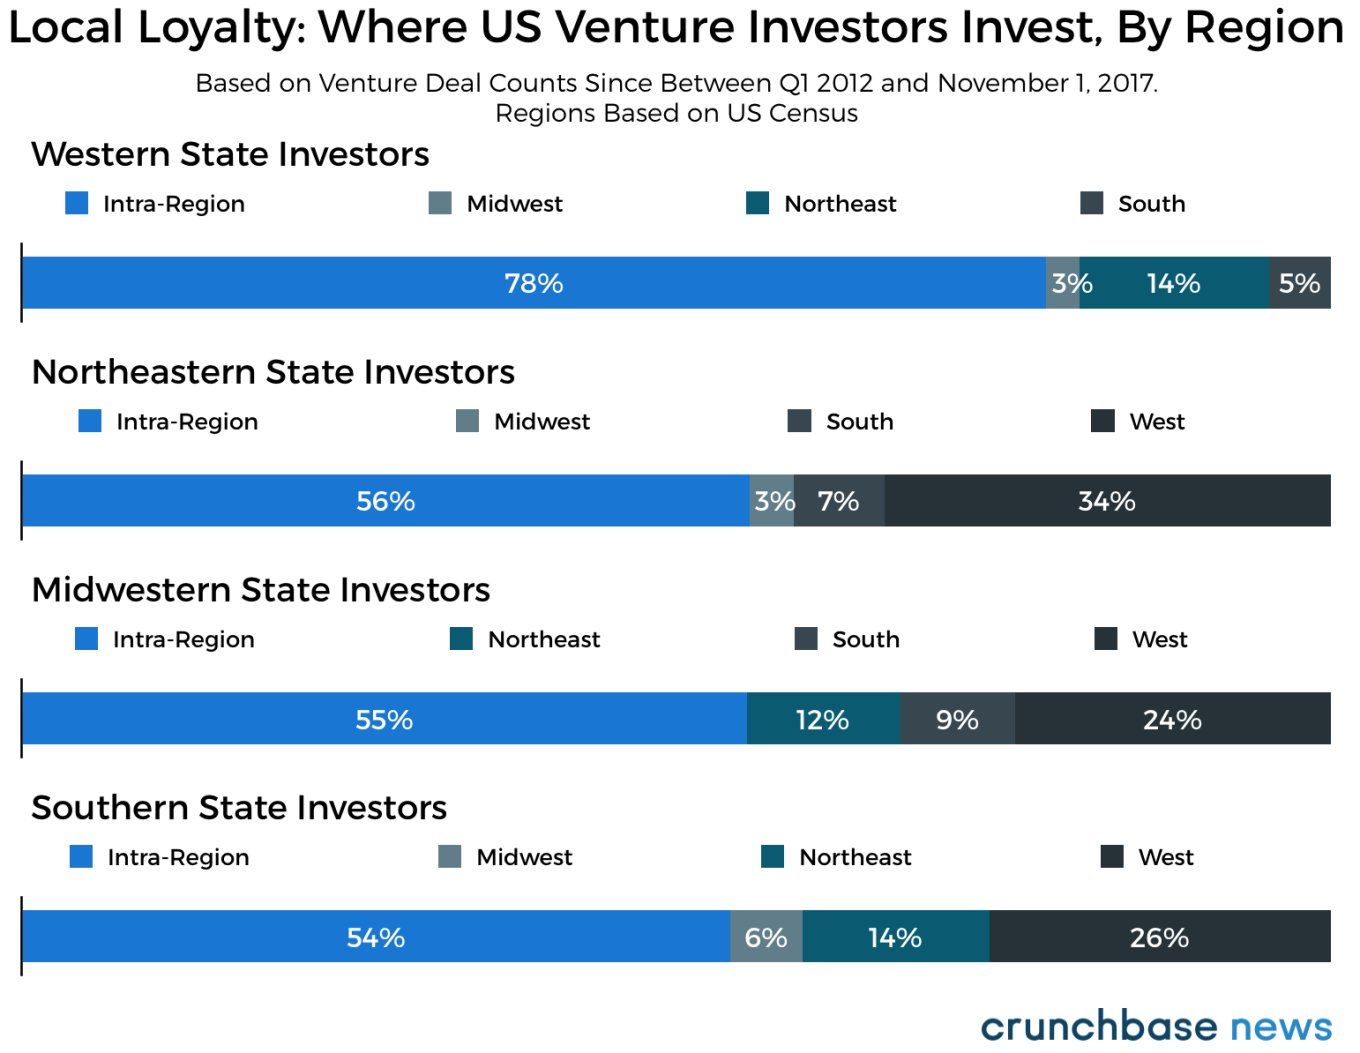 Where venture capitalists invest and why https://t.co/suMjDh2gWj https://t.co/g9jL4D4QDB